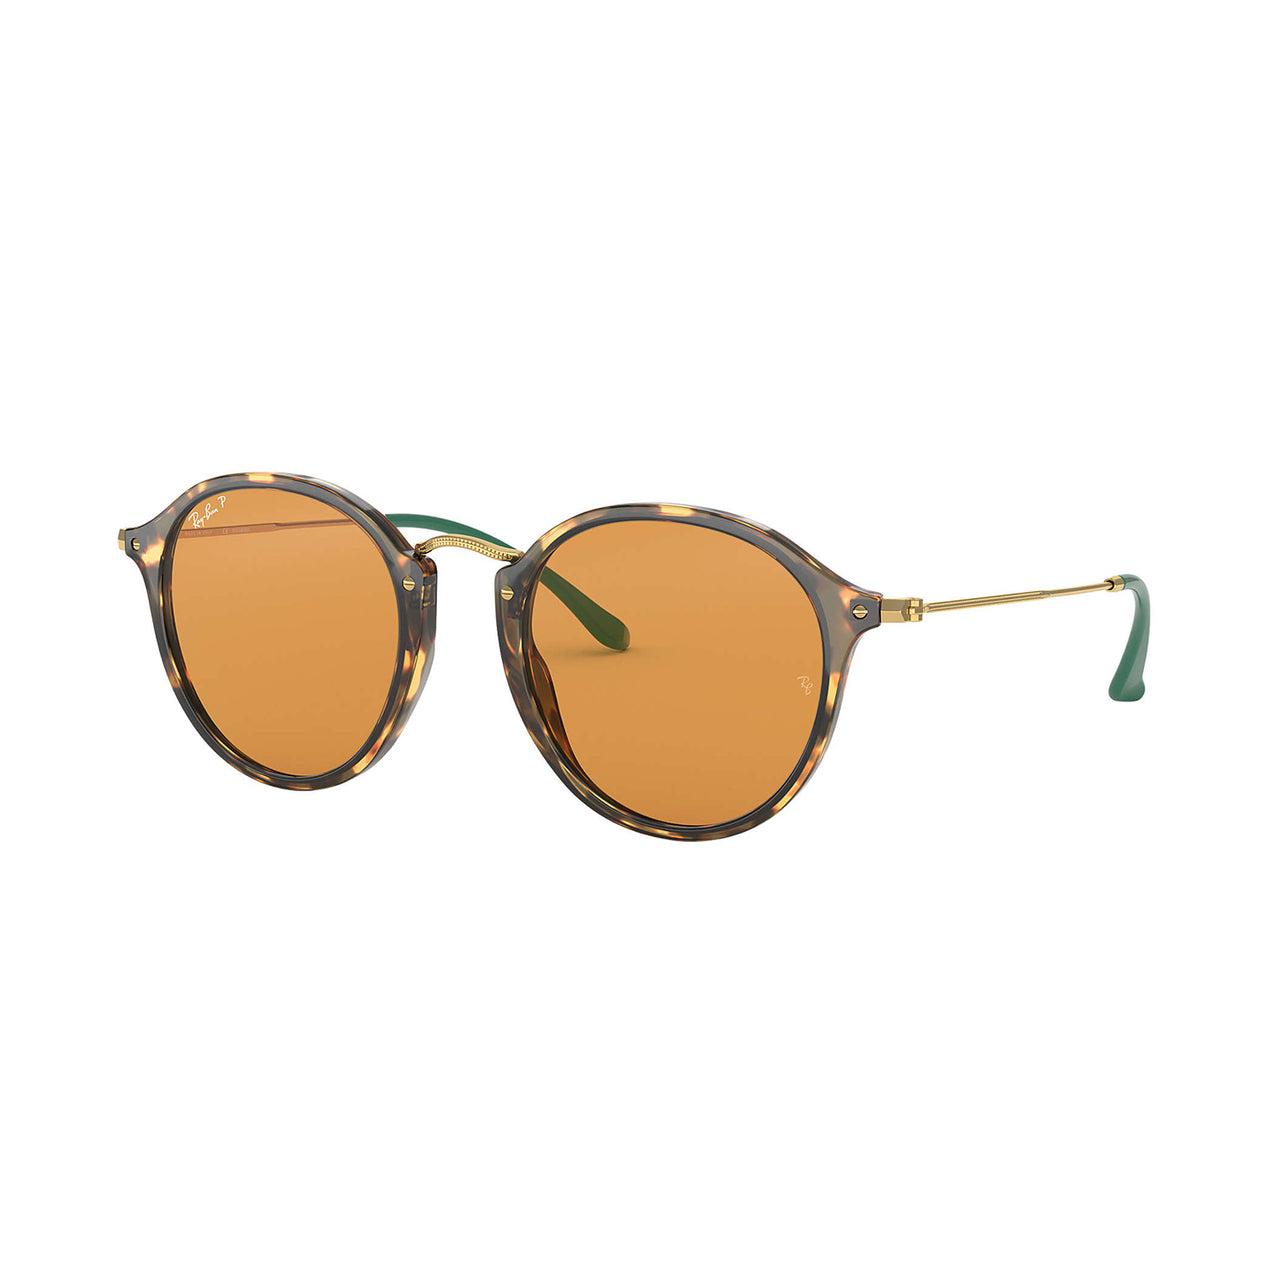 a0fd1d971b Ray-Ban Round Fleck Sunglasses - Tortoise Gold Frame - Yellow Classic  Polarized Lens